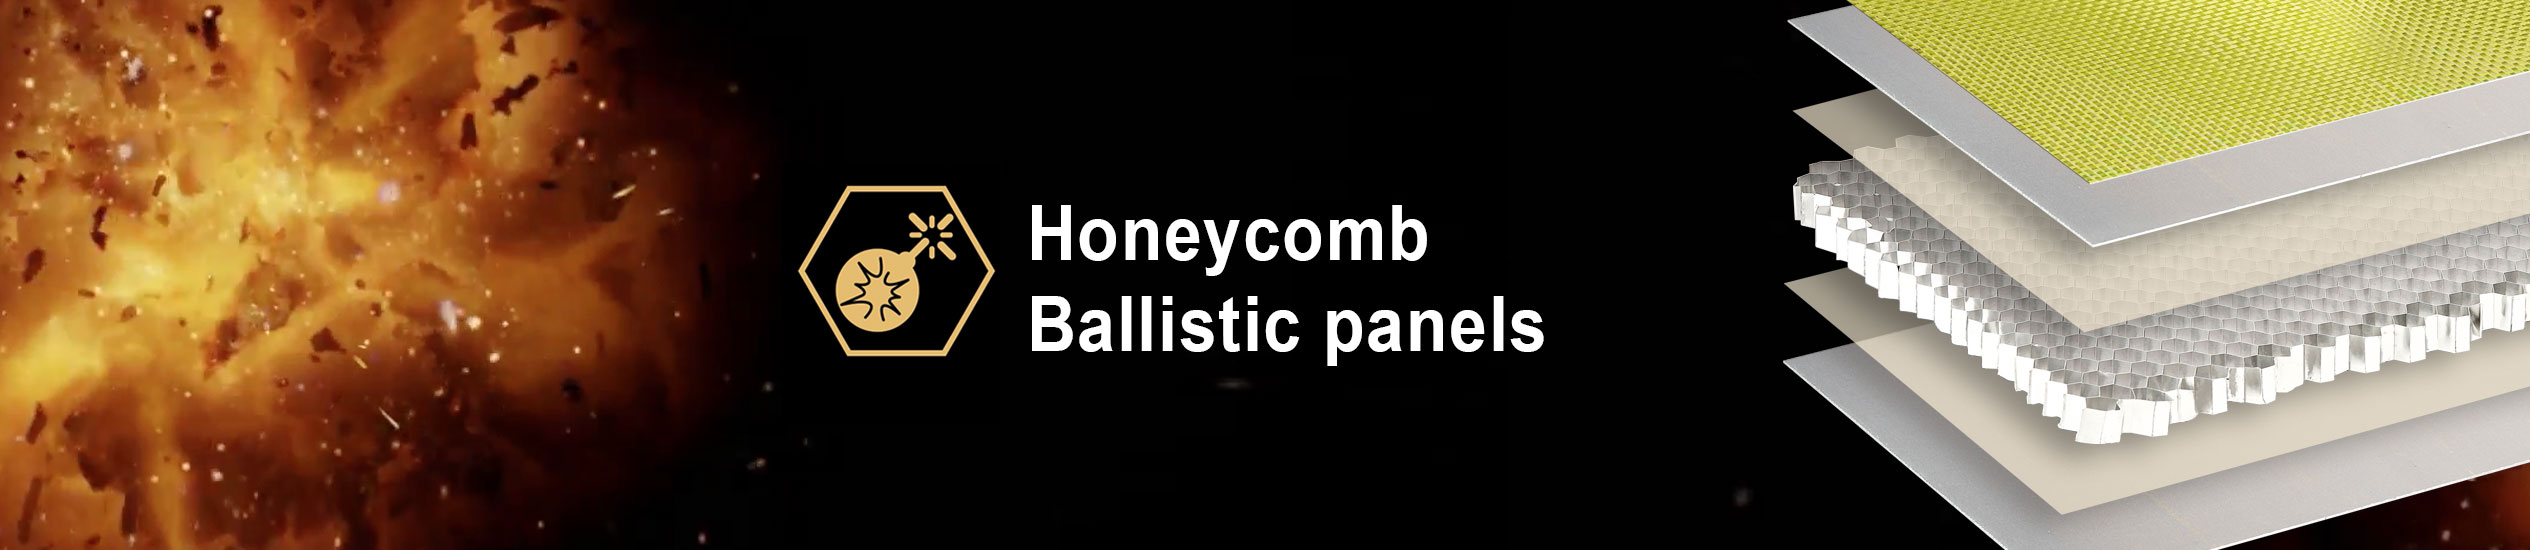 Honeycomb panels have an extraordinary potential for ballistic purposes as they can absorb strong shockwaves, retain fragments, are lightweight.